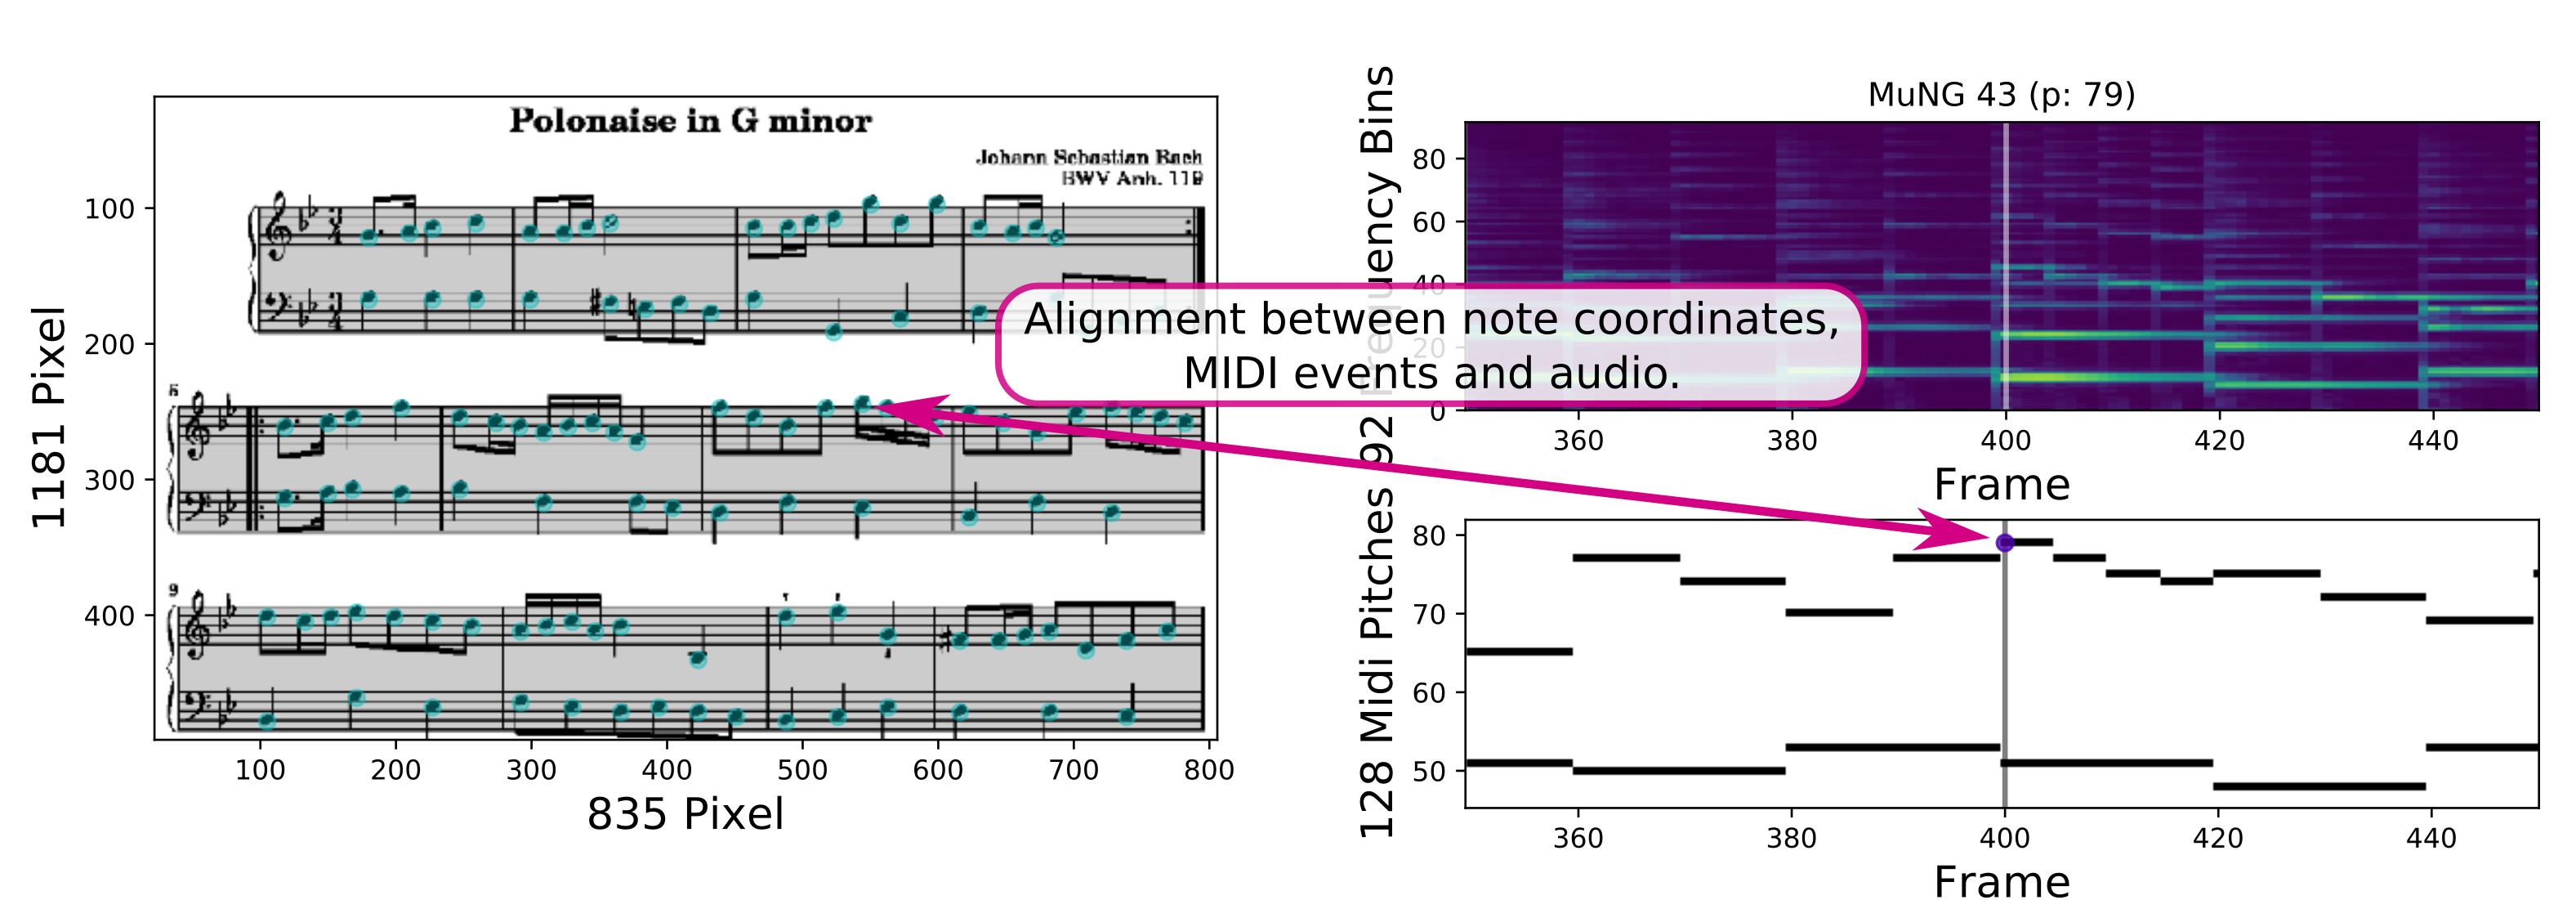 Optical Music Recognition Datasets | OMR-Datasets